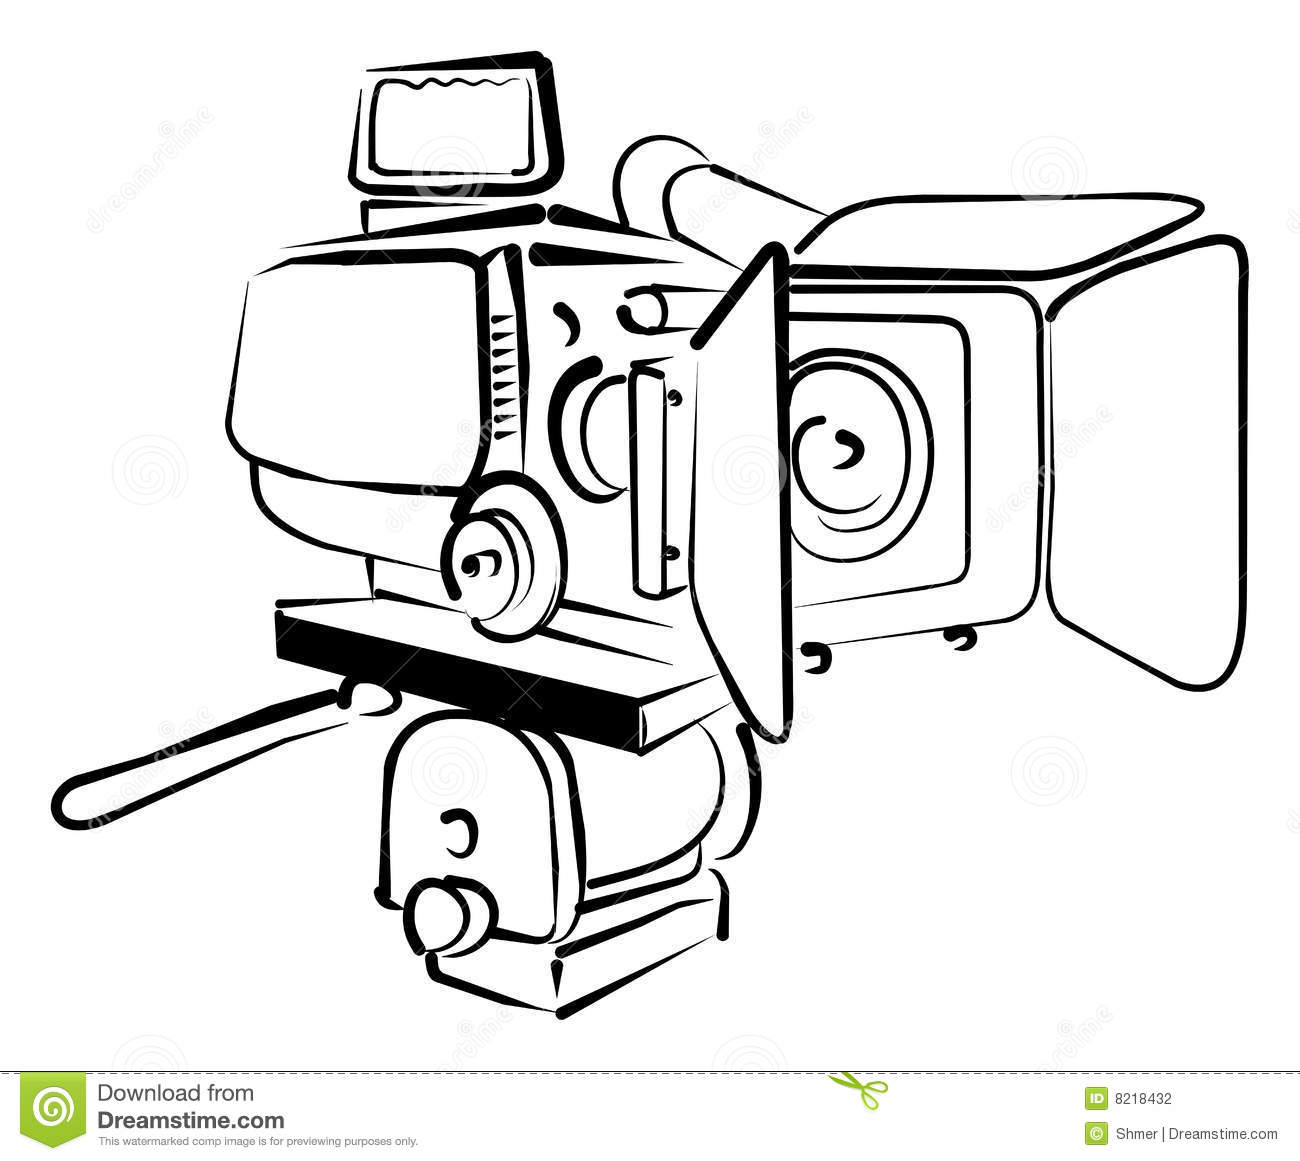 Video camera stock vector. Image of cinema, foto, isolate